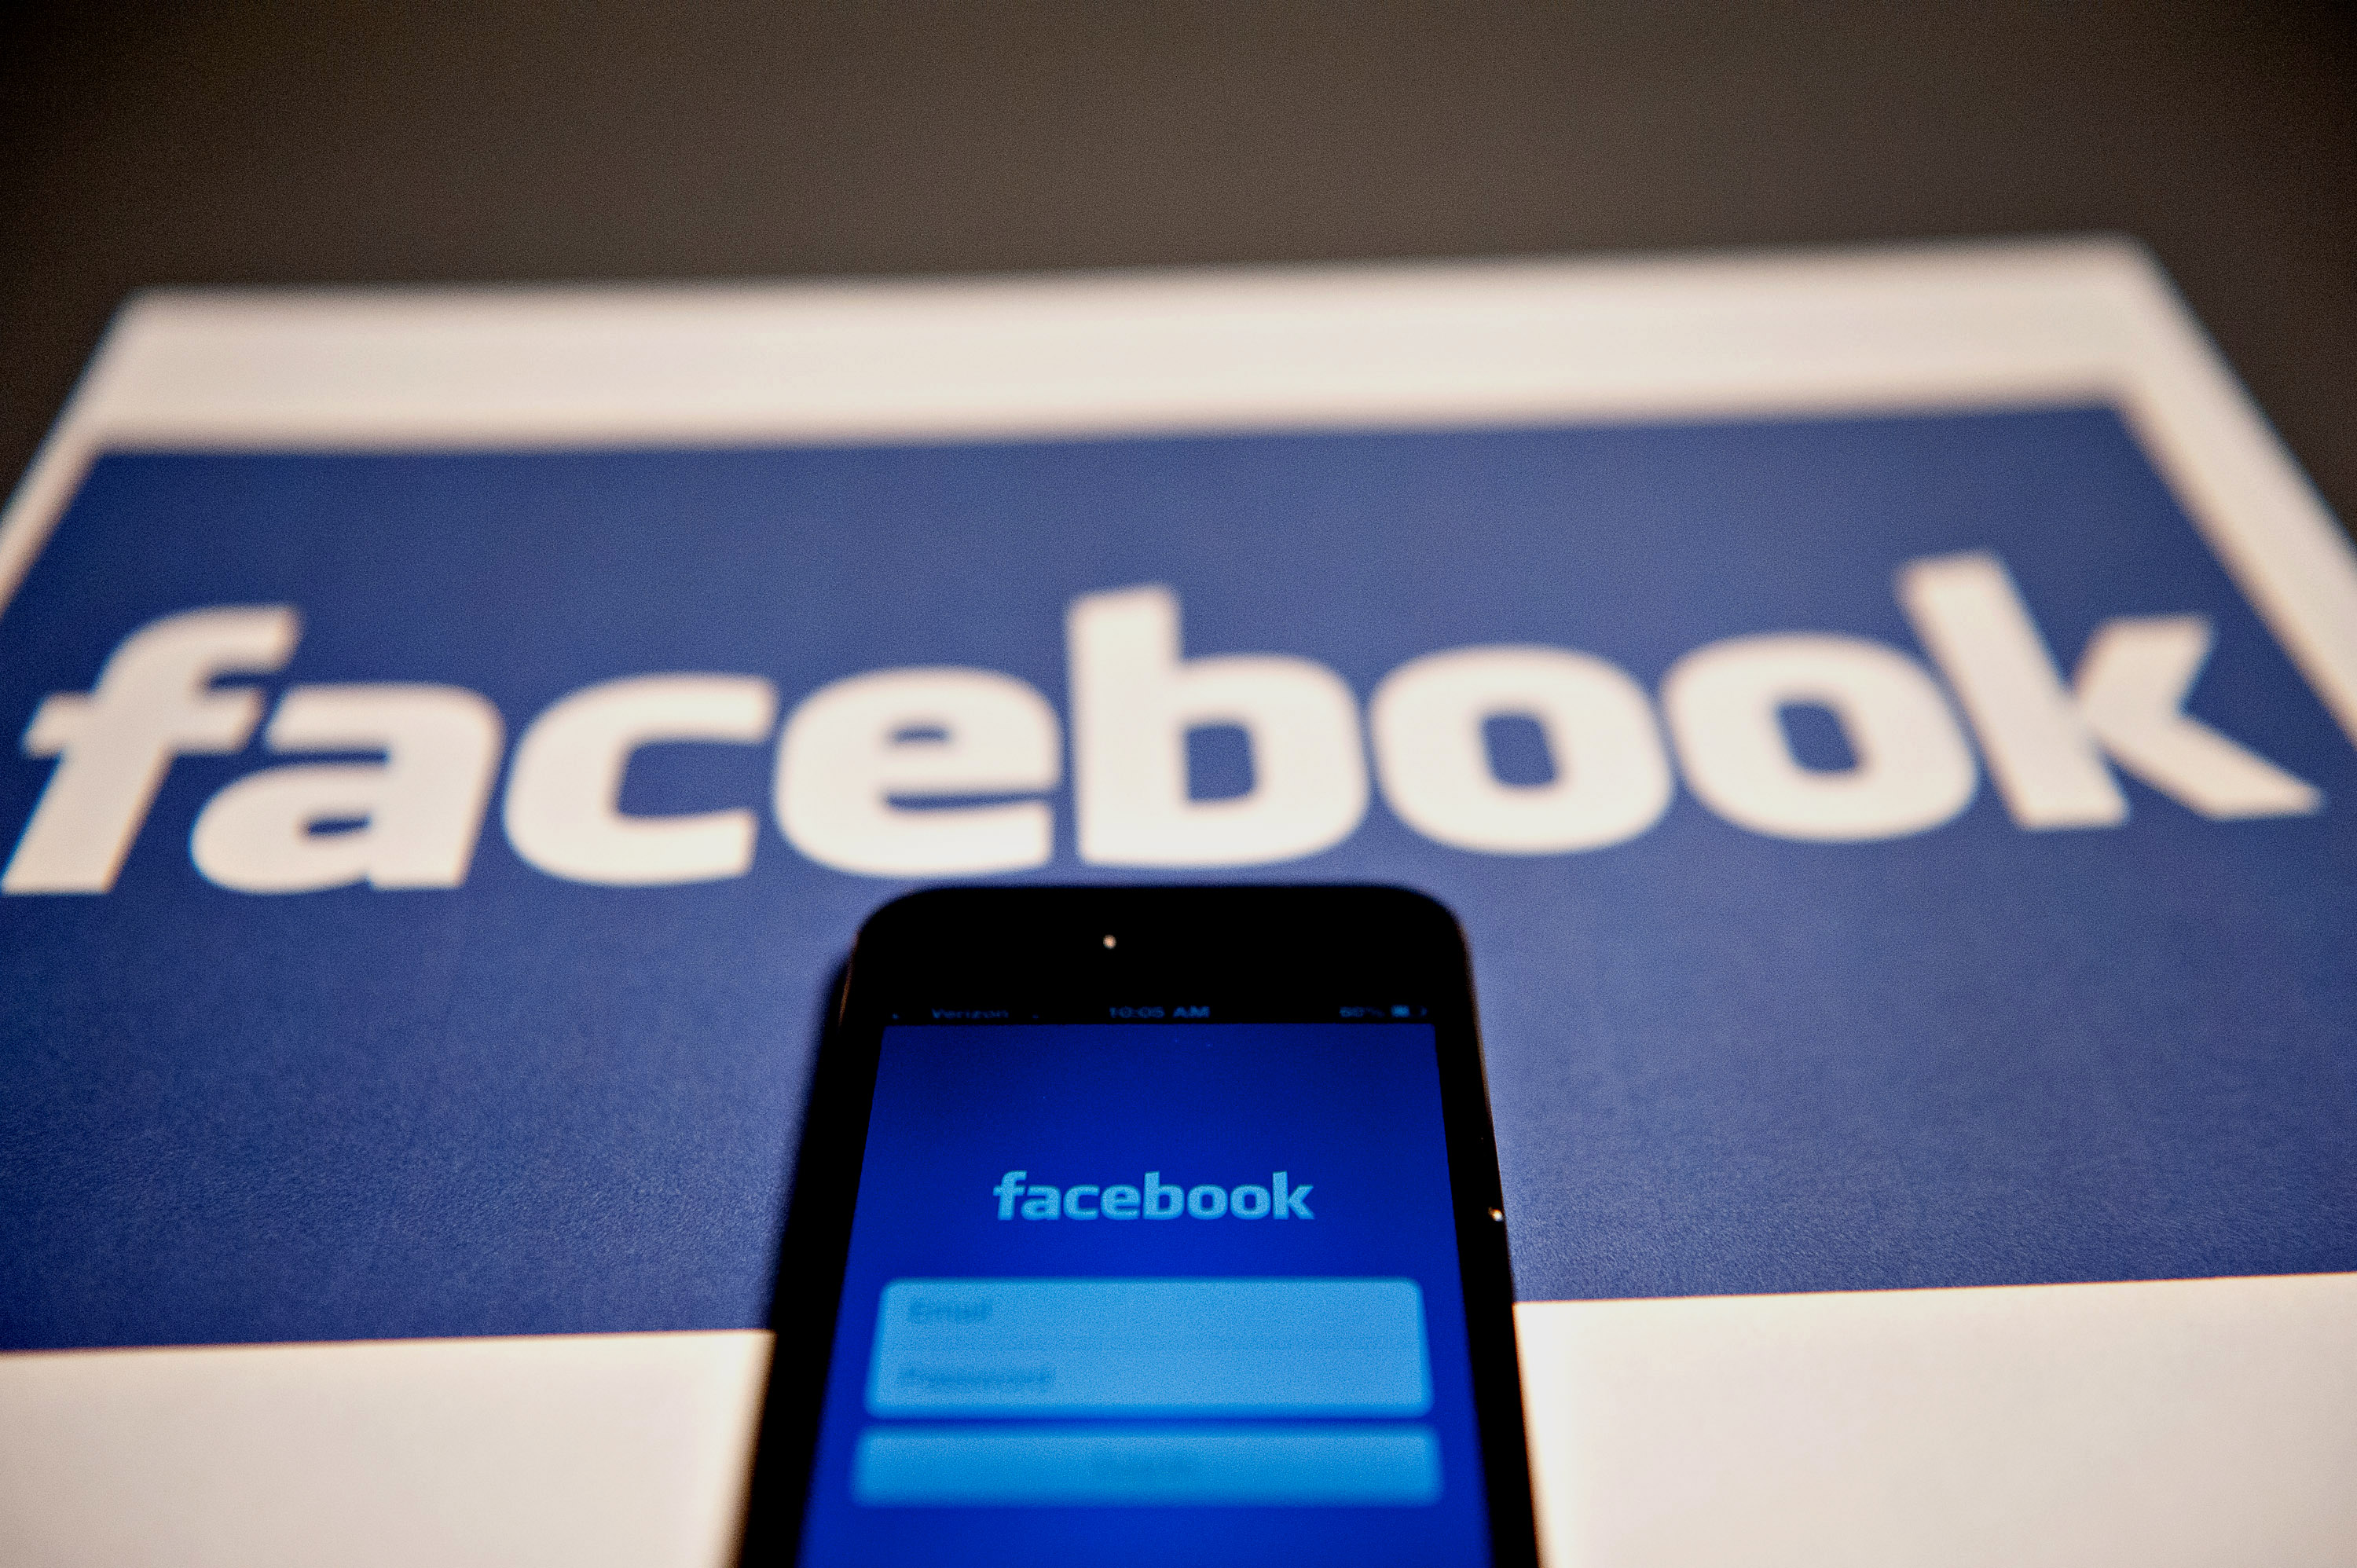 The login page for the Facebook Inc. mobile application is displayed on an Apple Inc. iPhone 5.